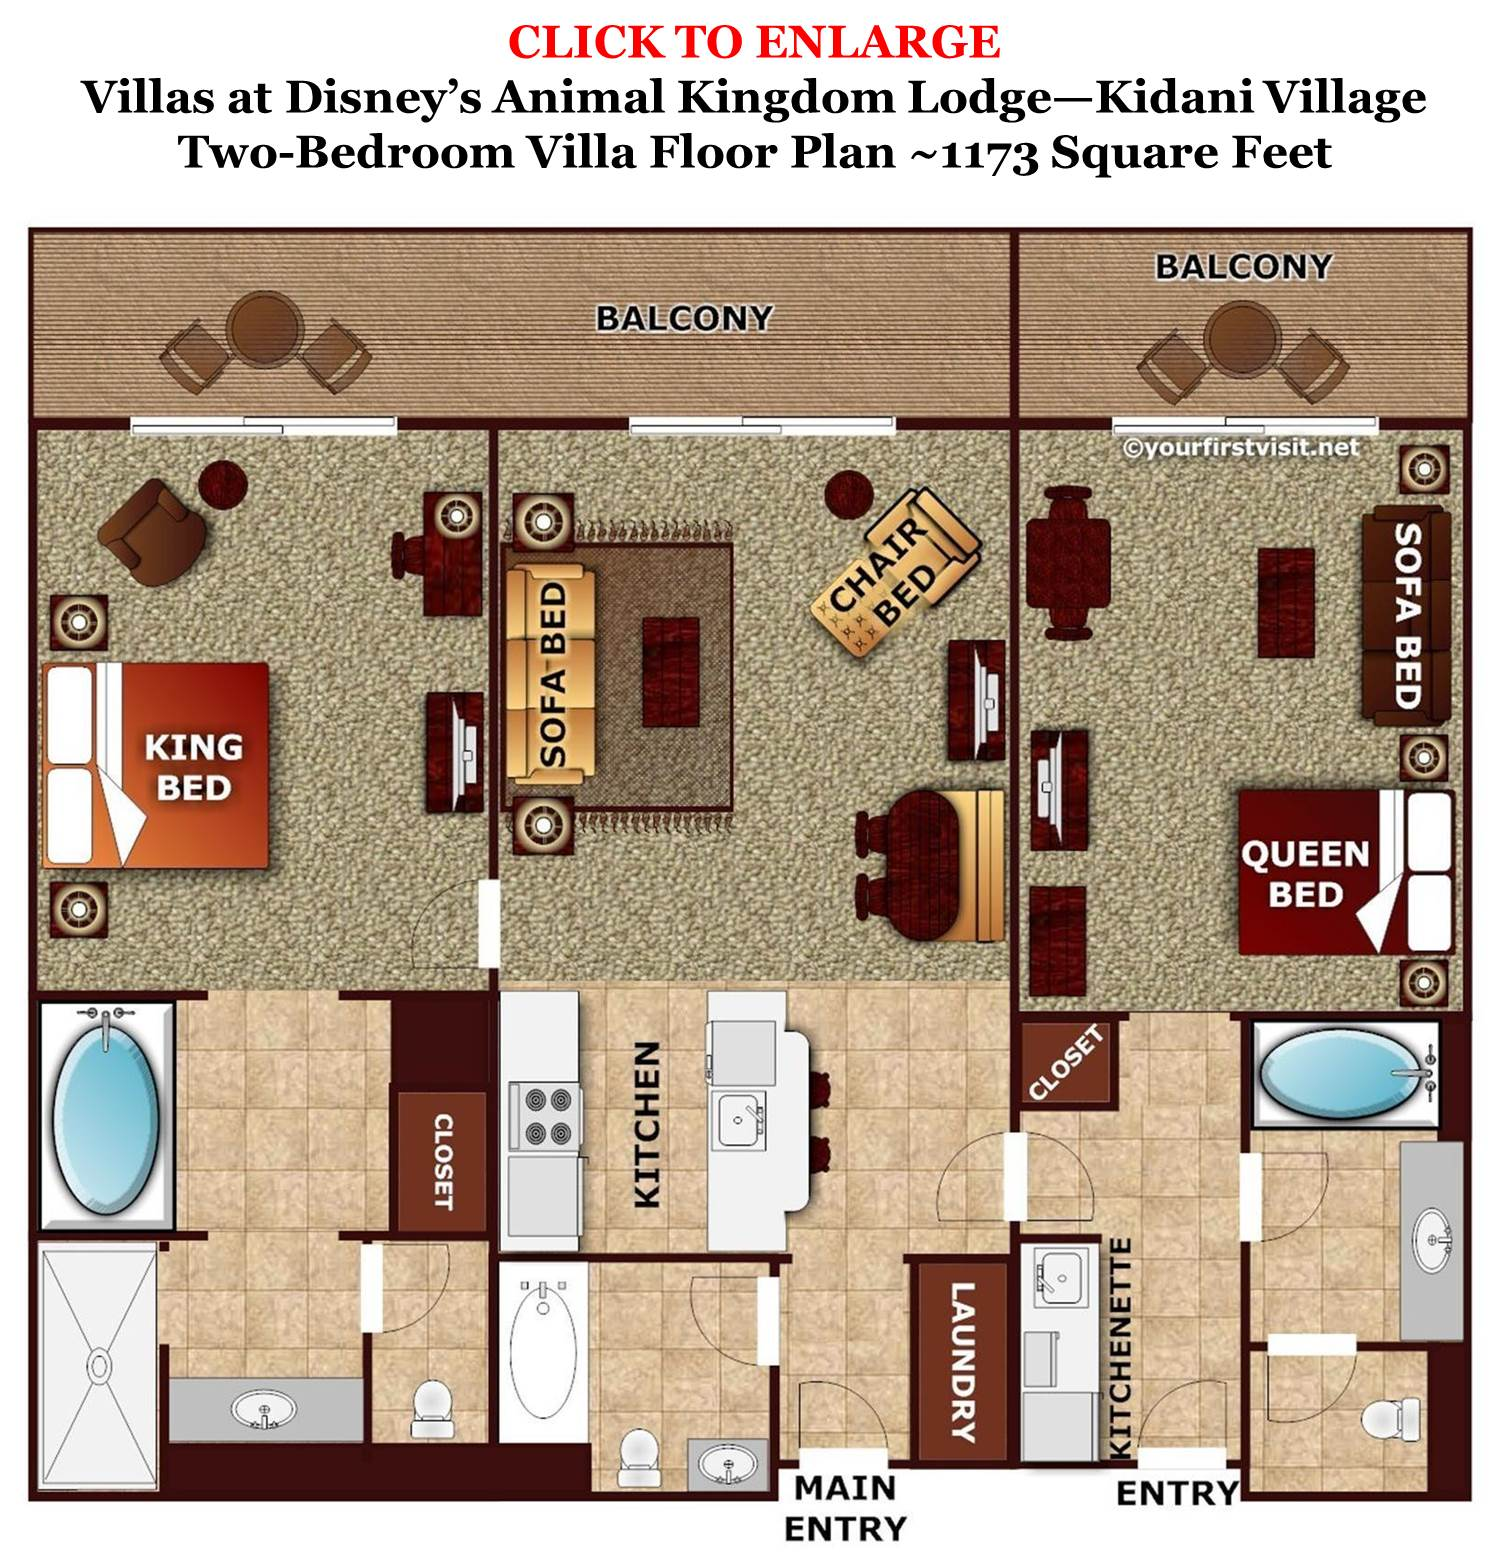 Two Bedroom Villa Floor Plan Kidani Village from yourfirstvisit.net